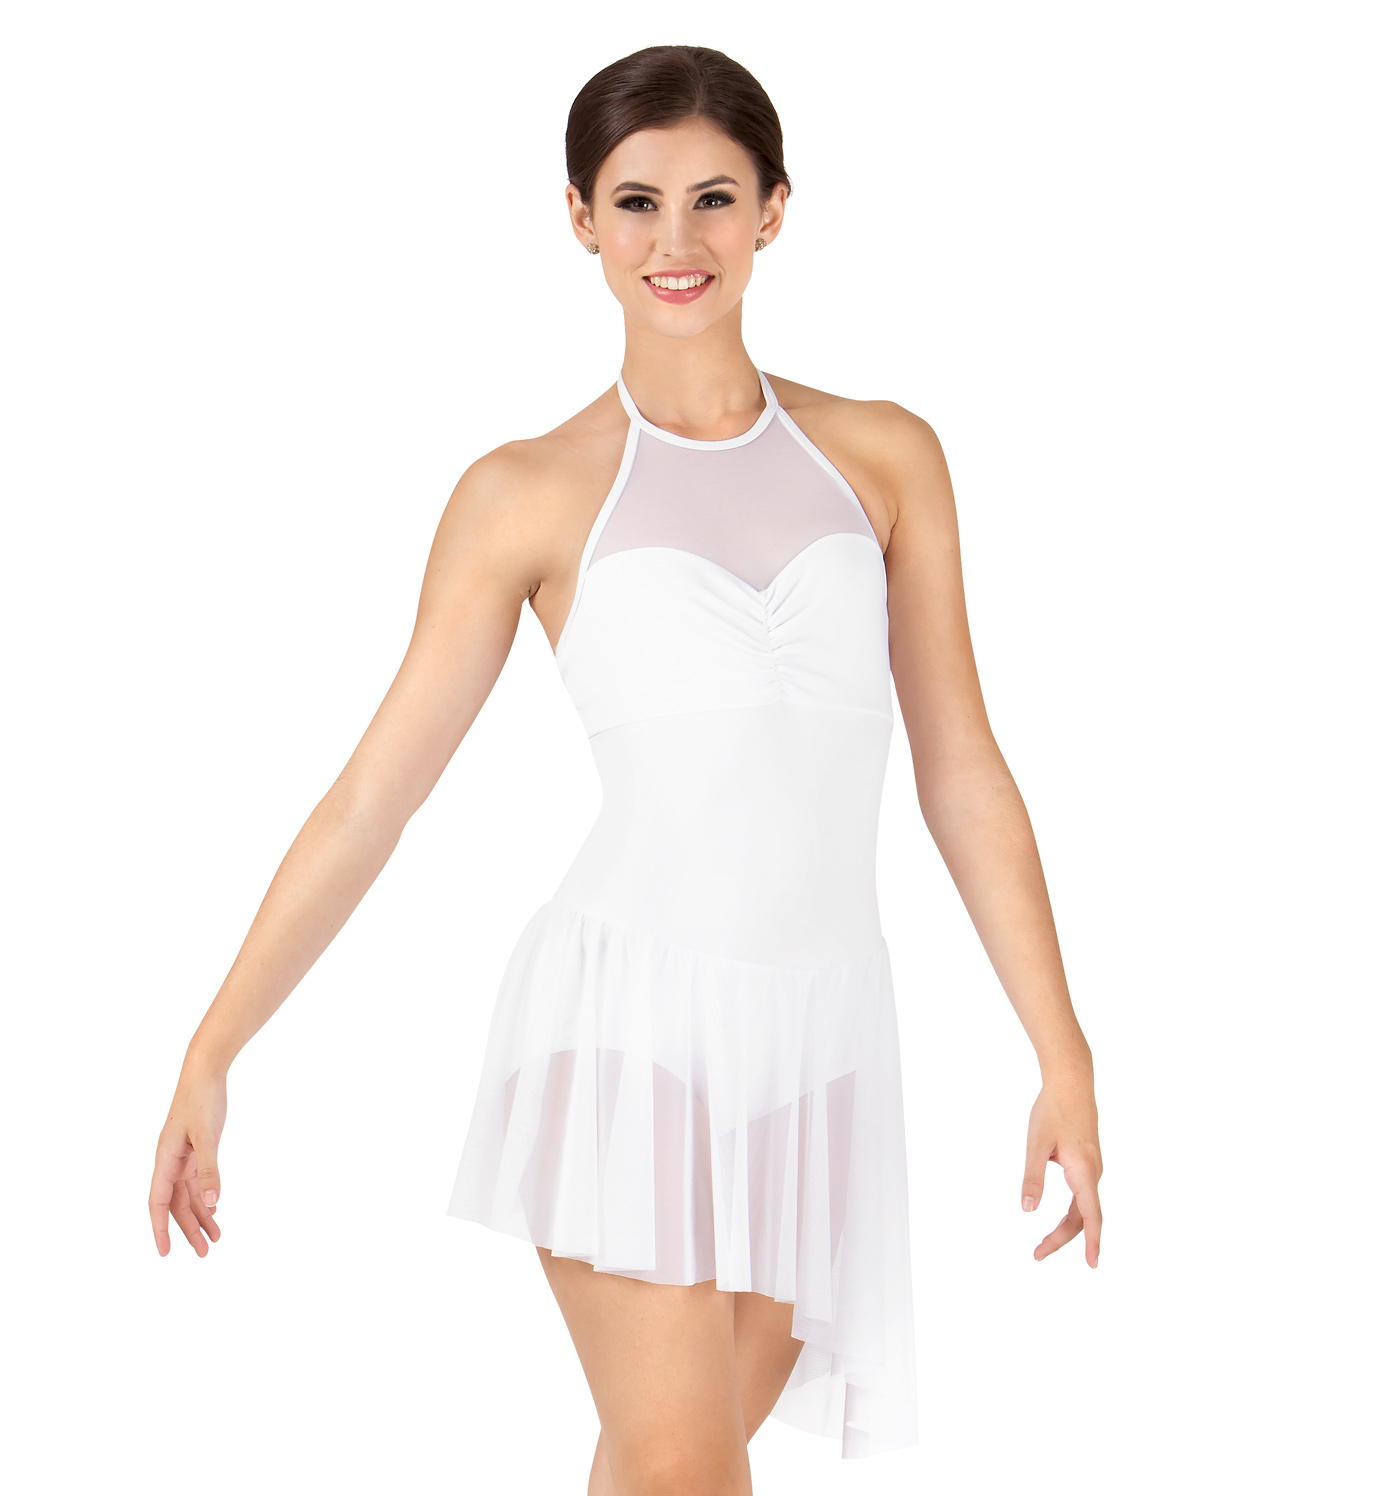 Image of Adult Asymmetrical Mesh Halter Dress